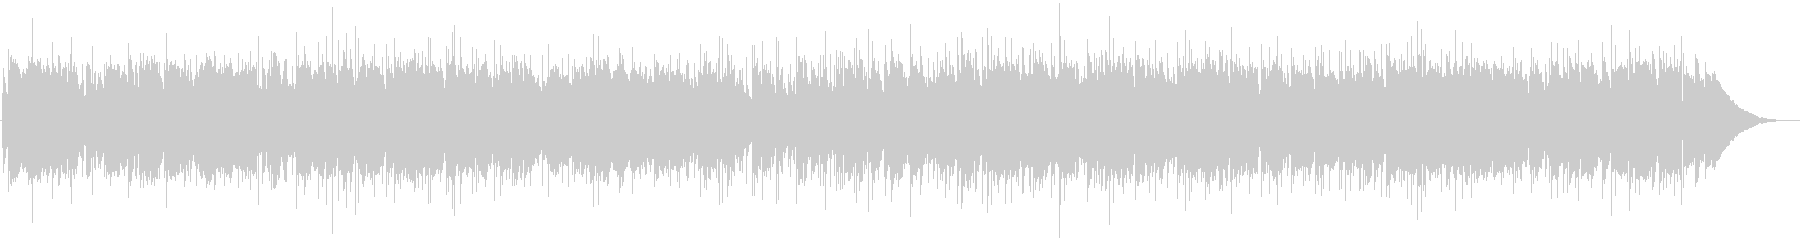 My home in Kentucky (guitar)'s unreproduced waveform